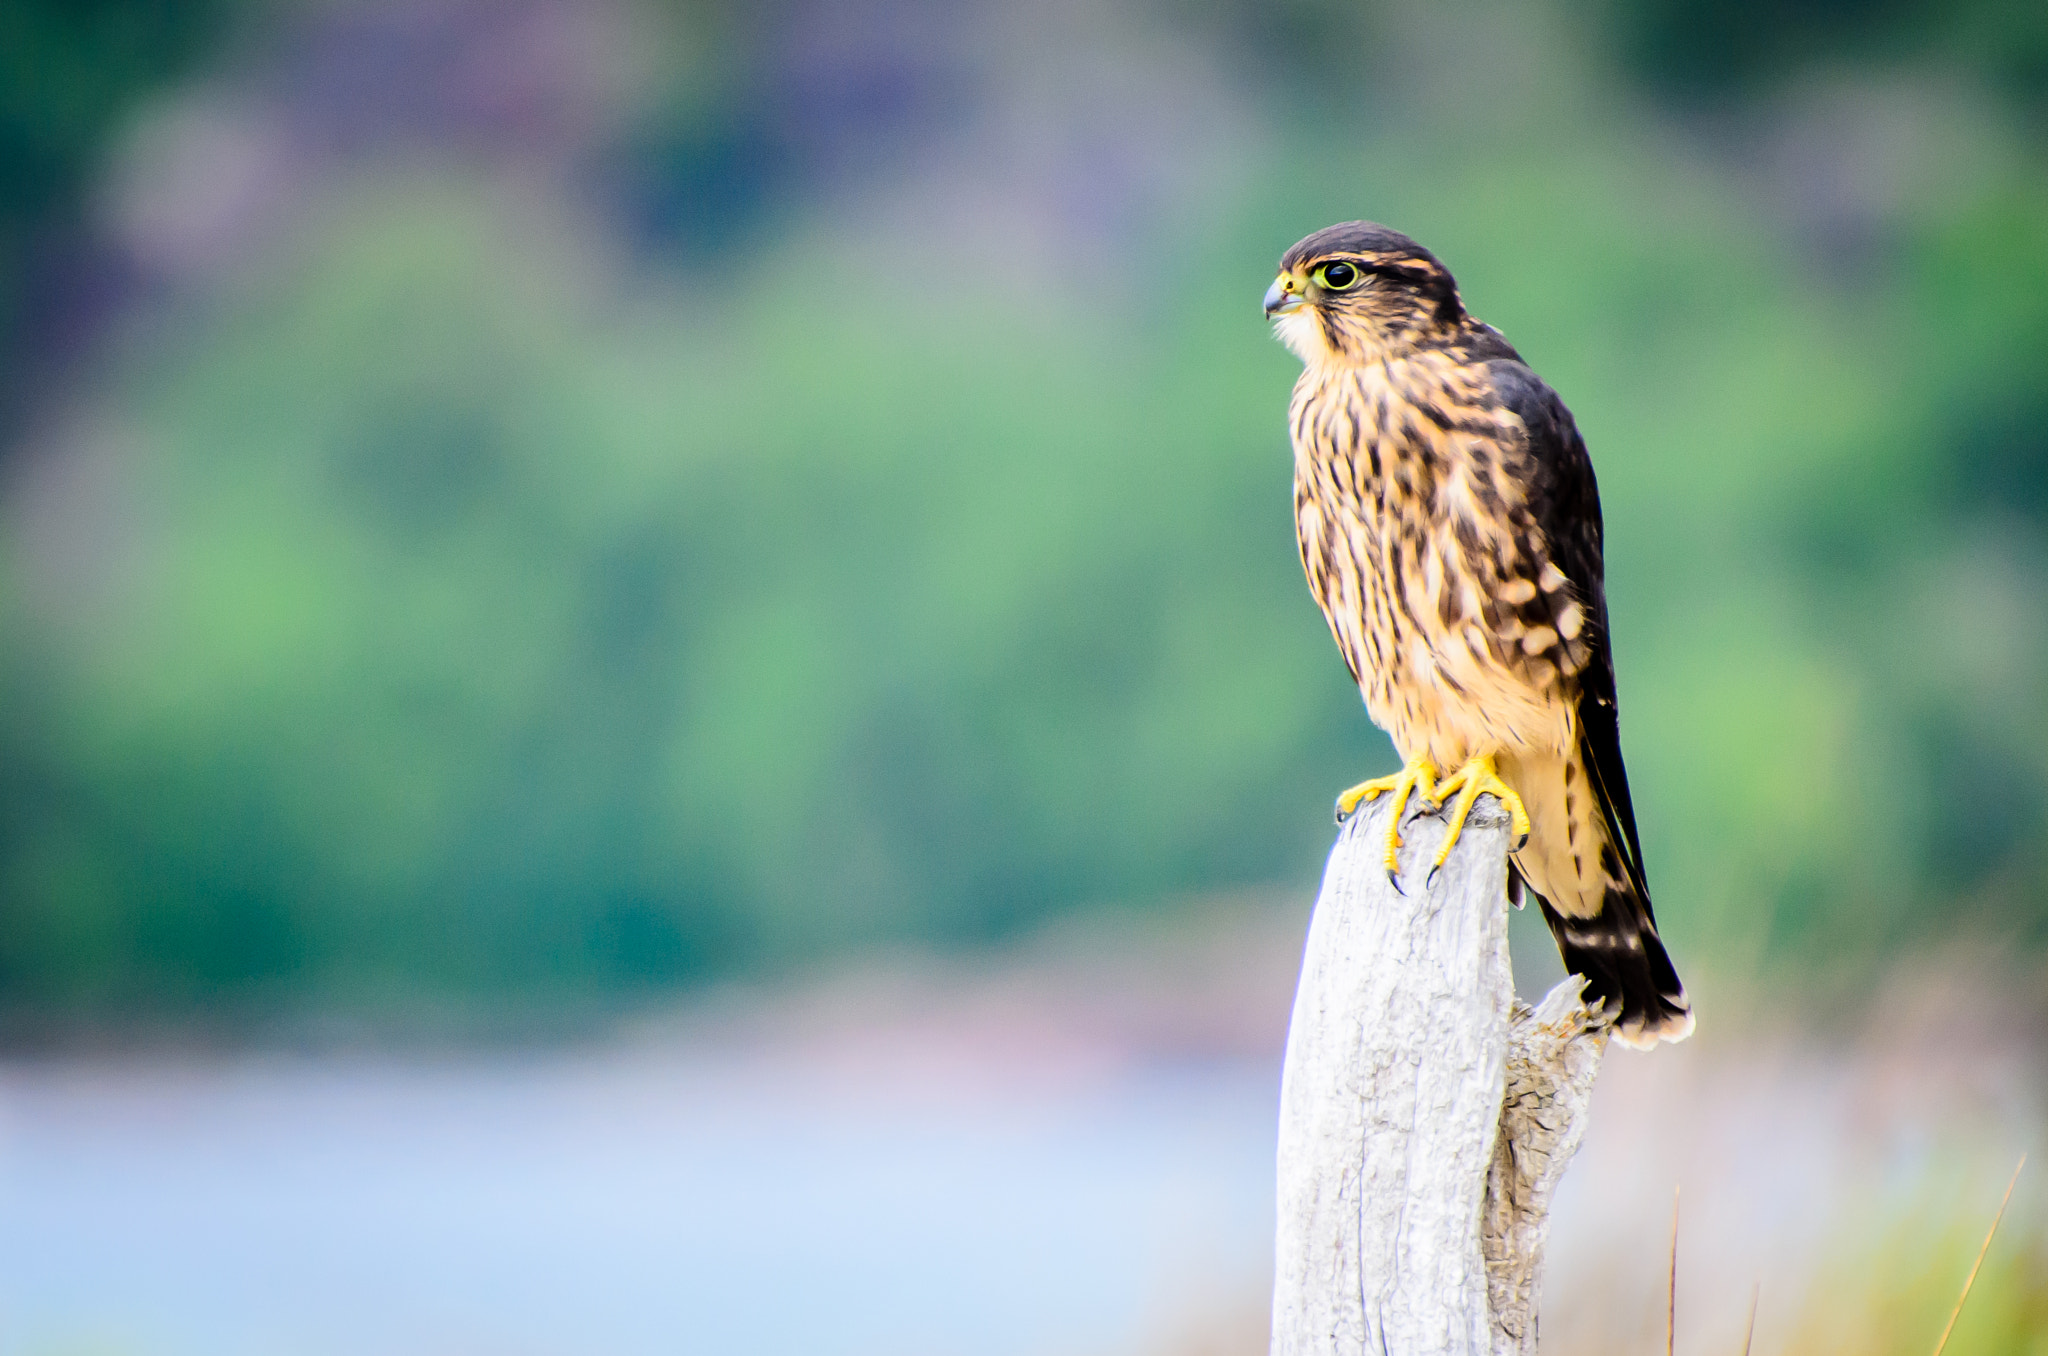 Photograph Merlin by Laurens Kaldeway on 500px